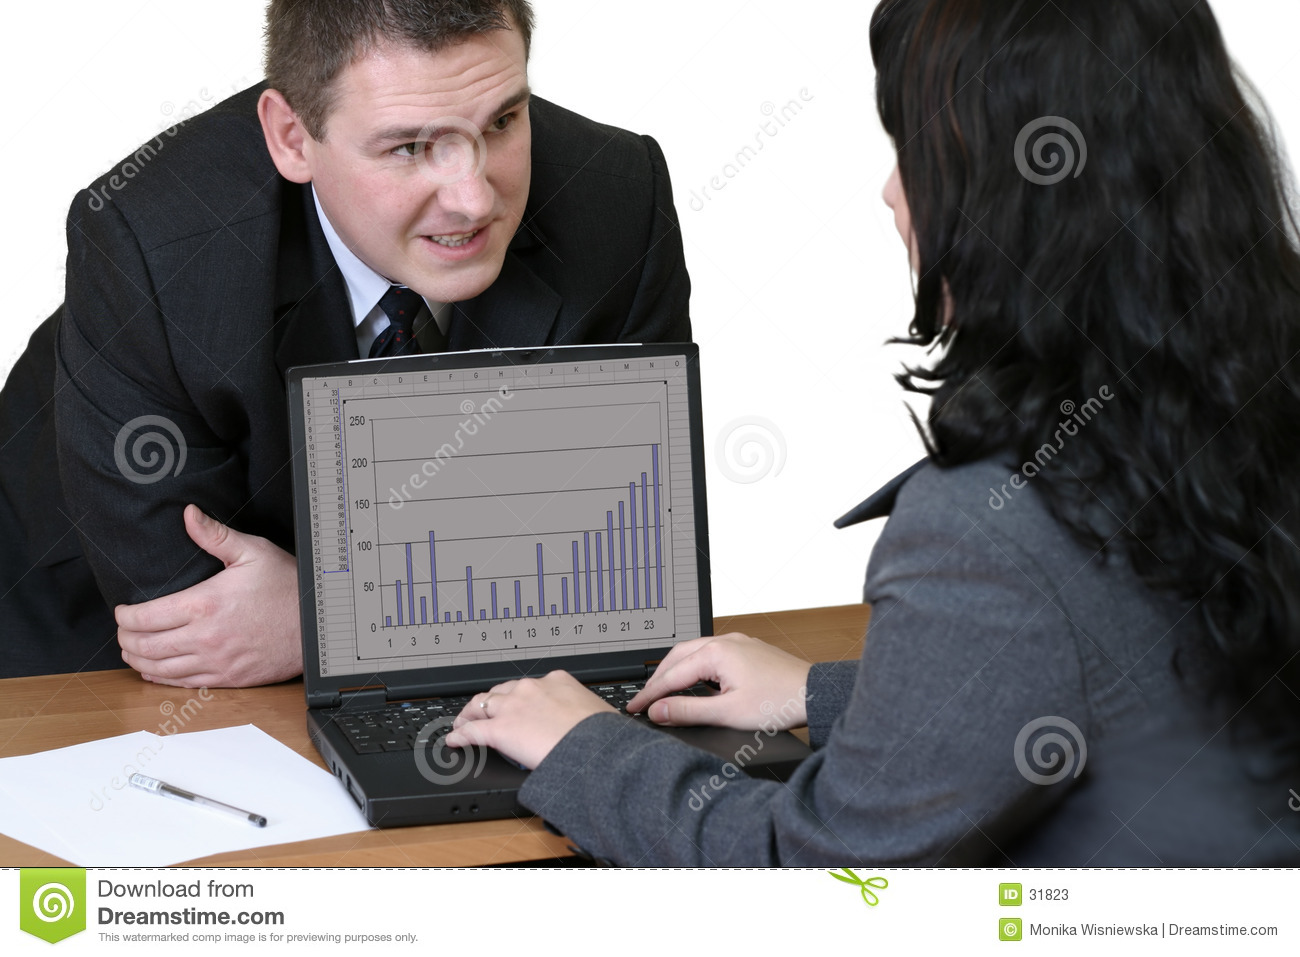 Office Workers - Conversation